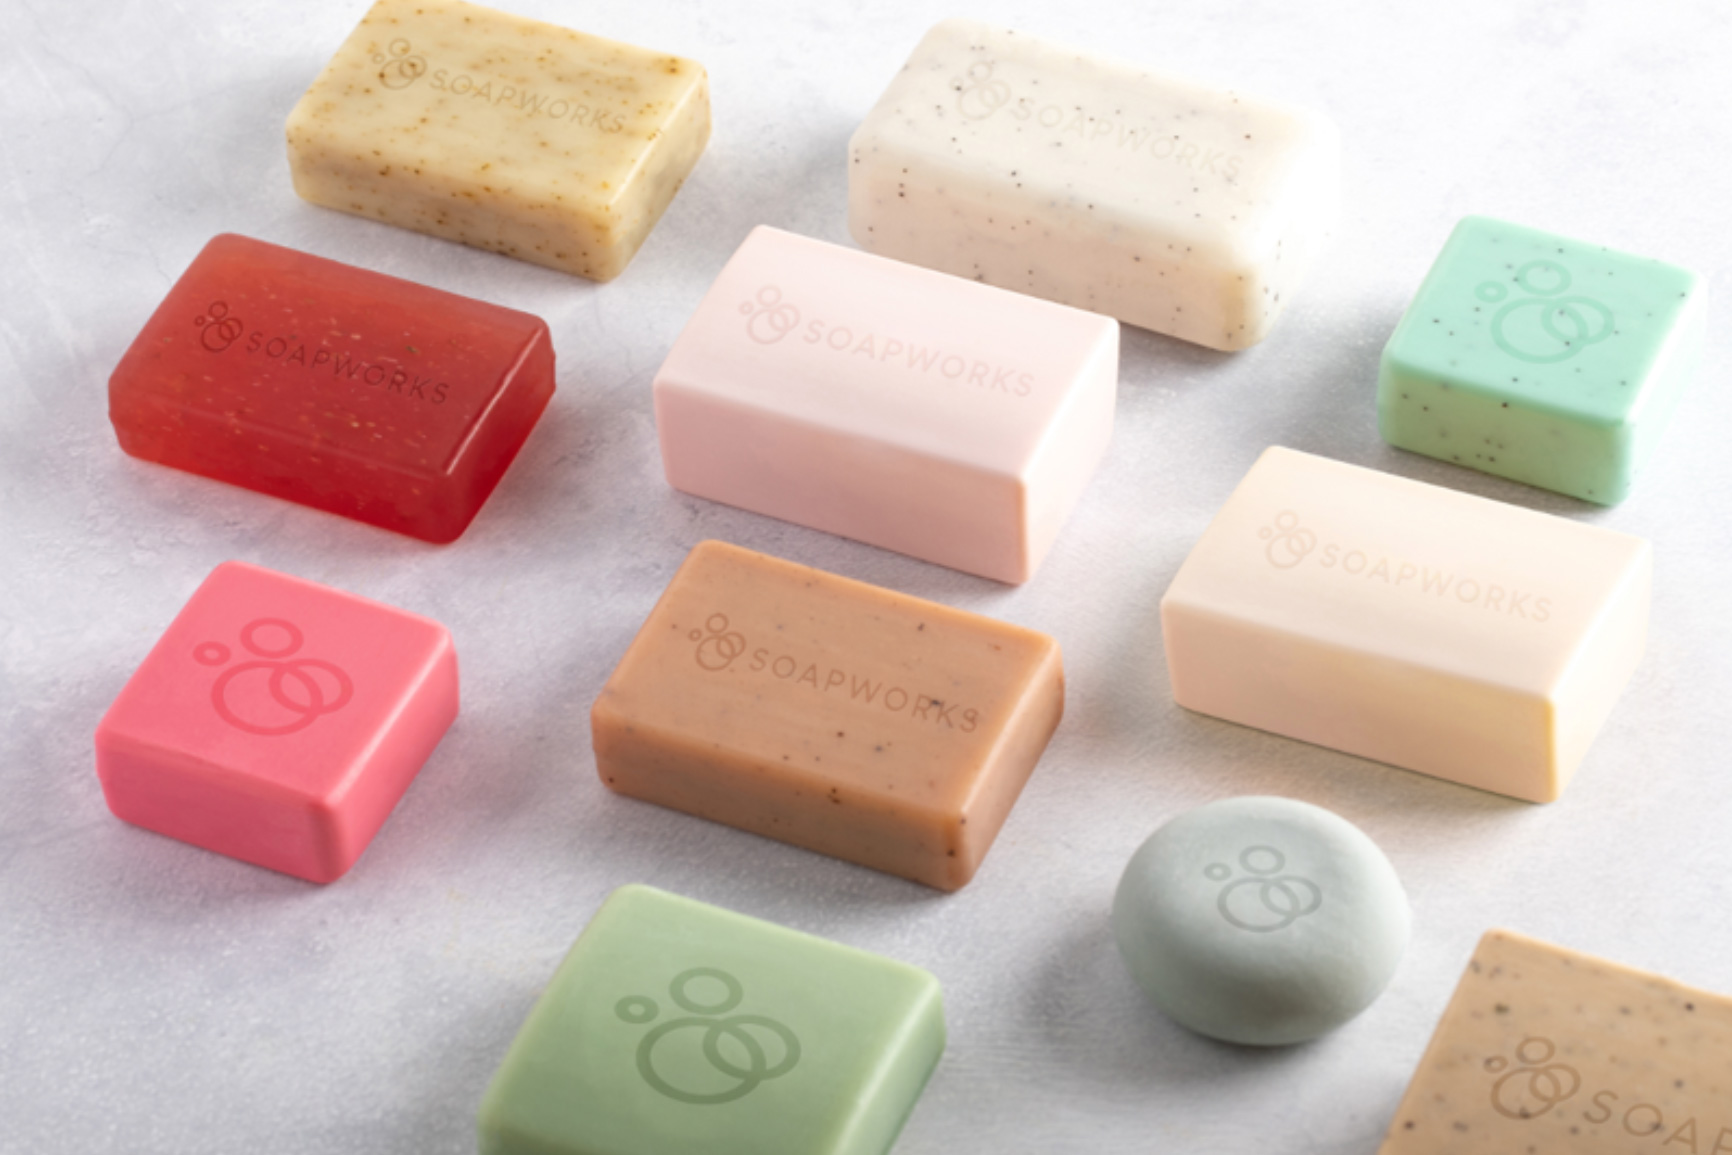 Wide selection of different coloured soaps laid out flat on a neutral background